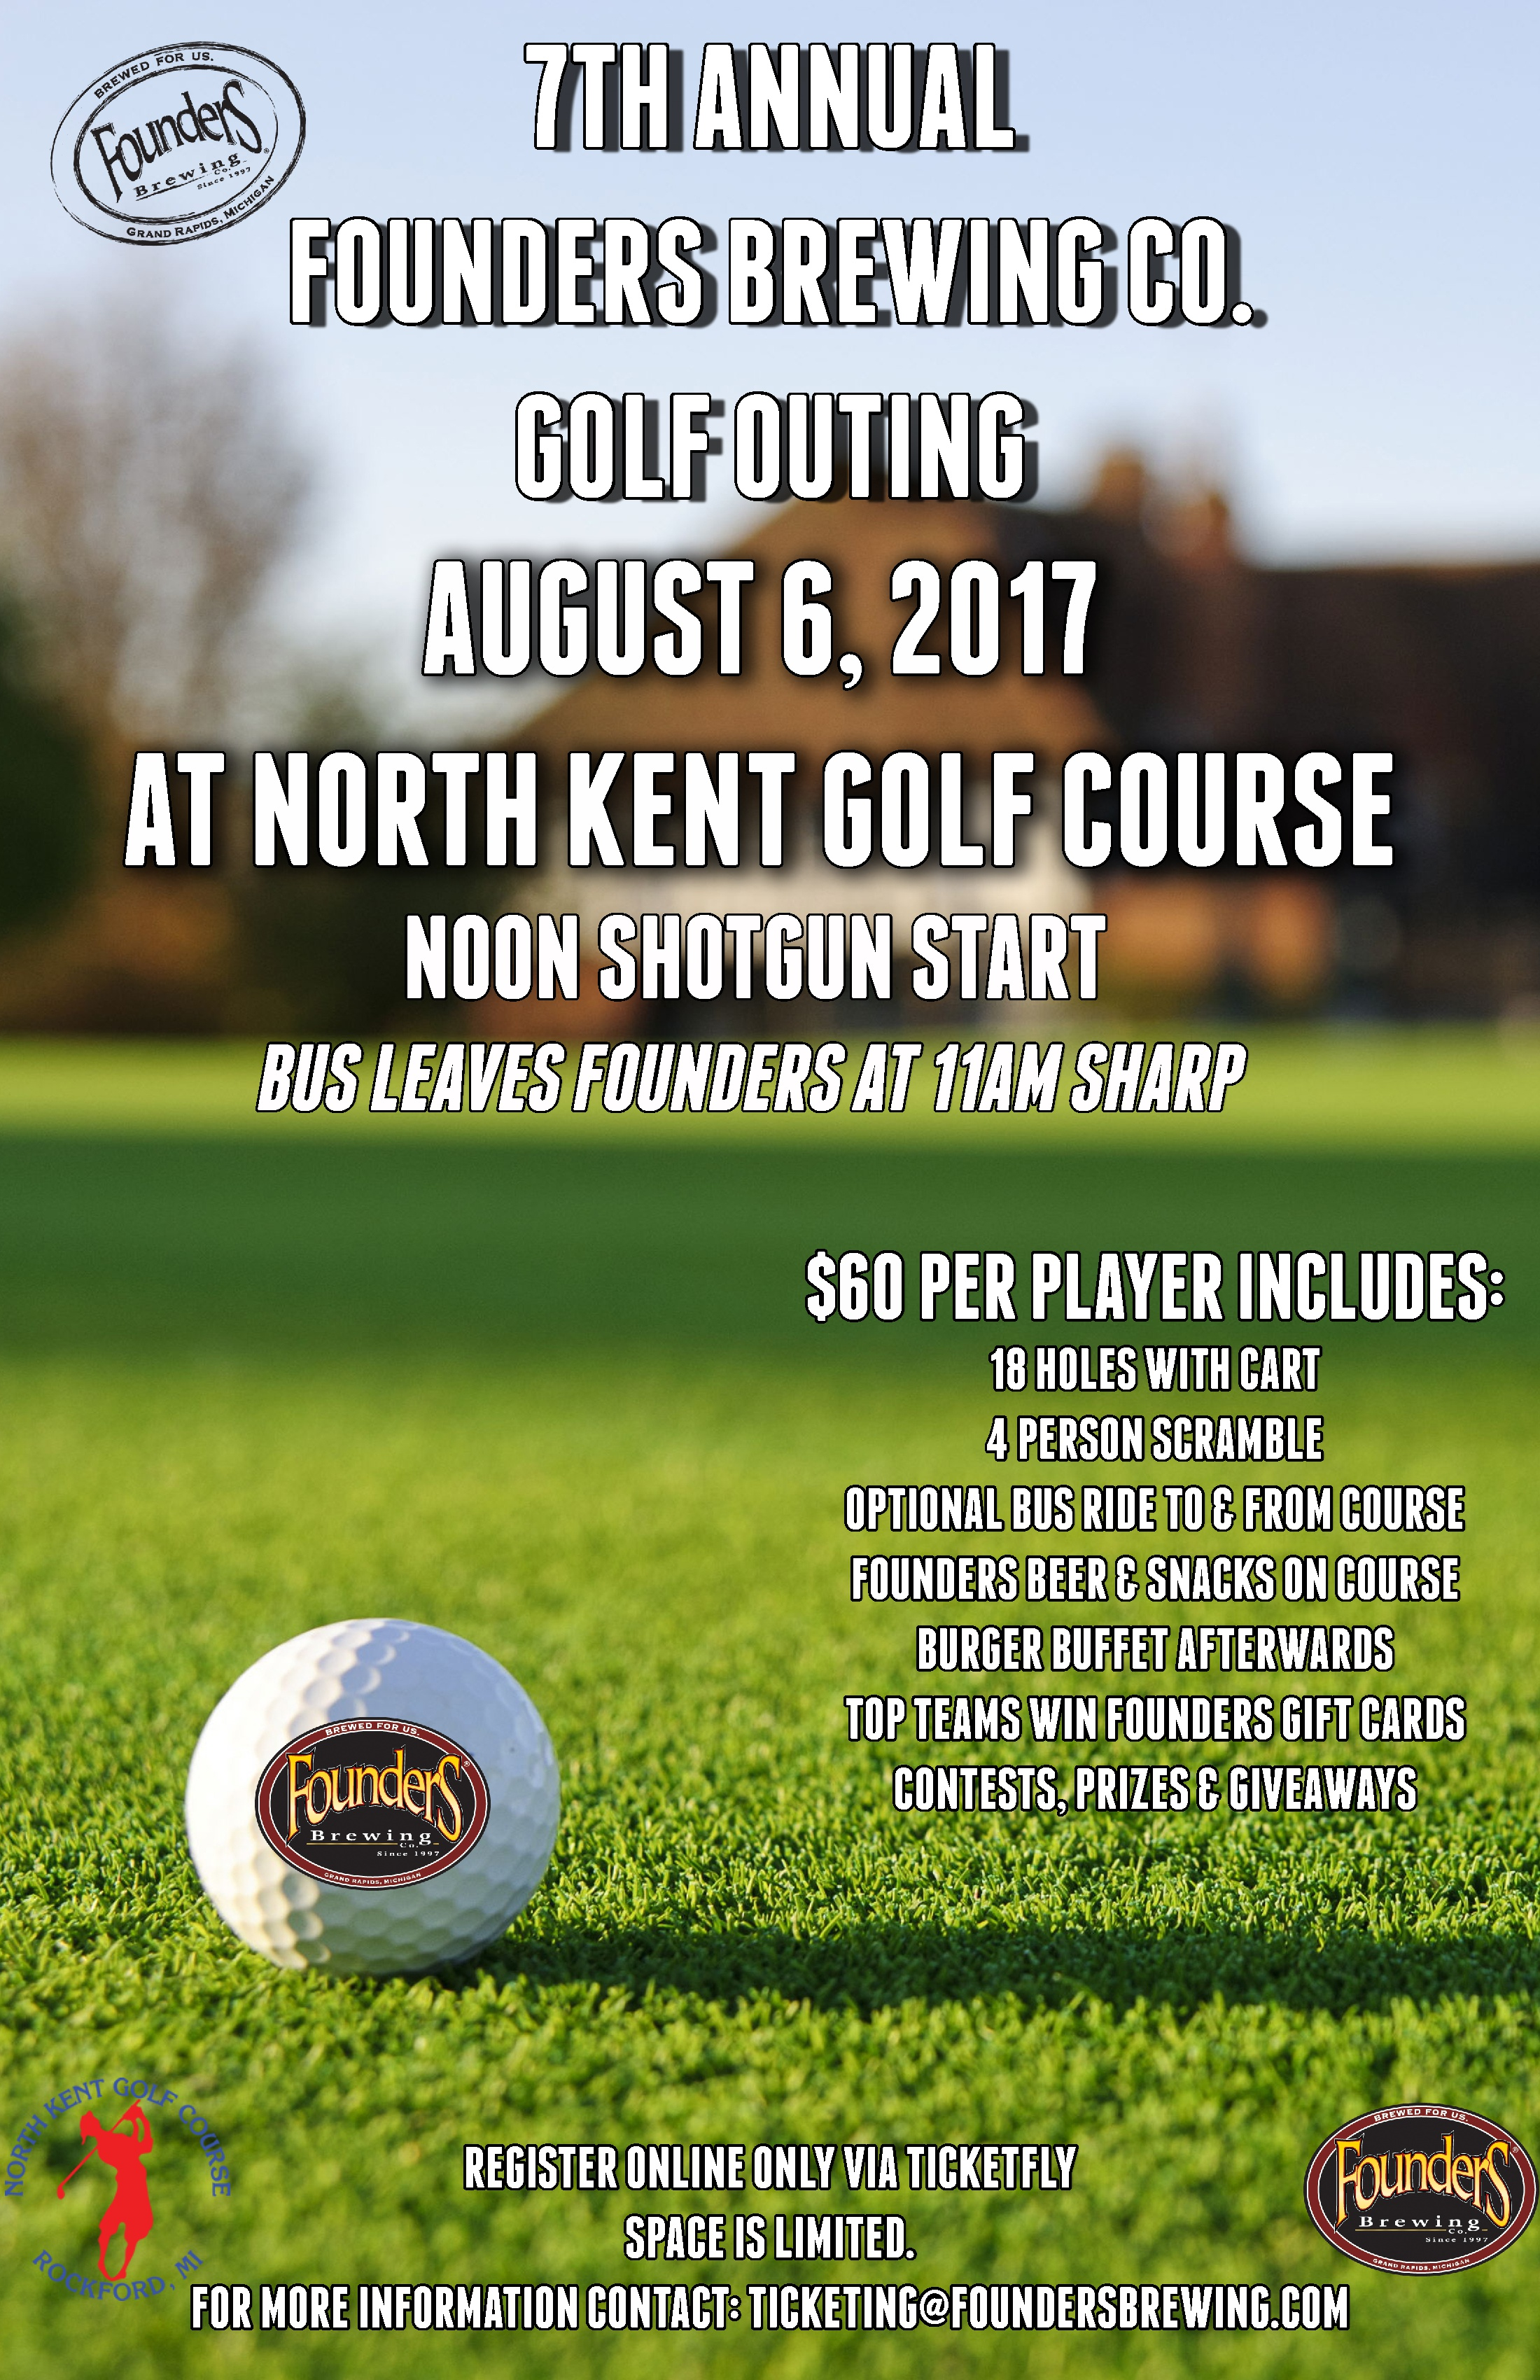 7th Annual Founders Brewing Golf Outing promotion poster